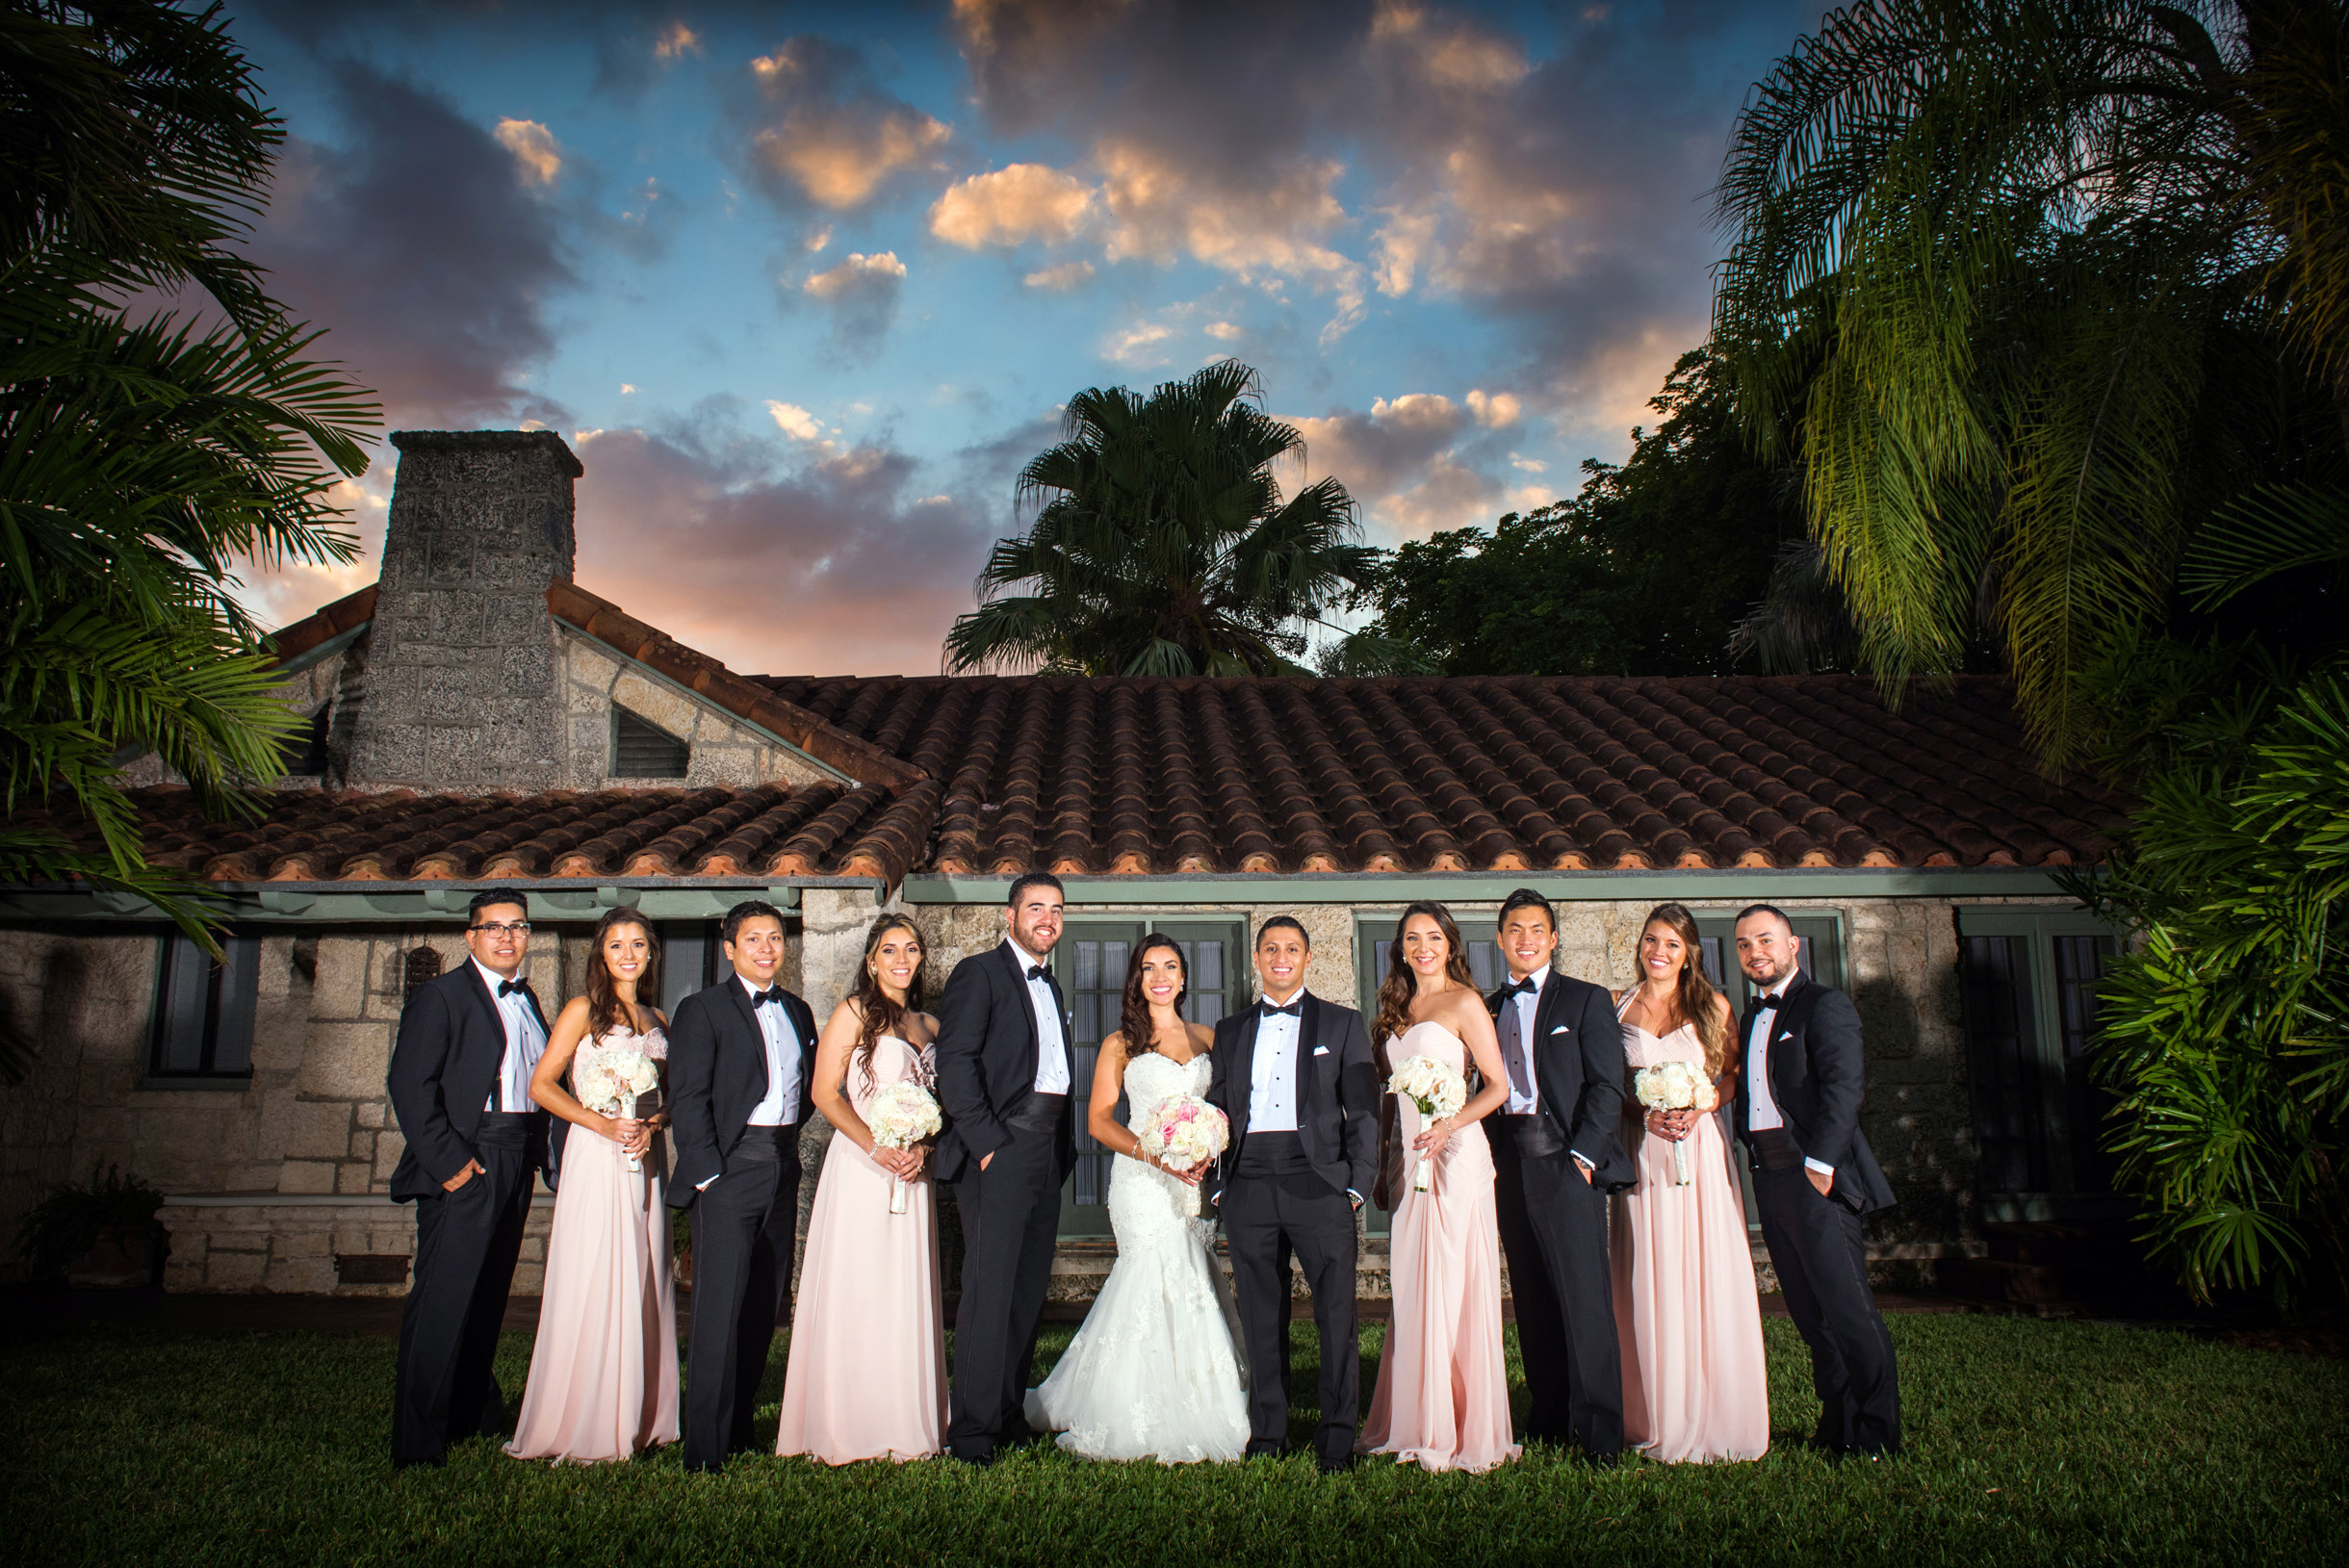 Wedding party posed by Spanish tile roof reception venue at the Cooper Estate in South Florida-017